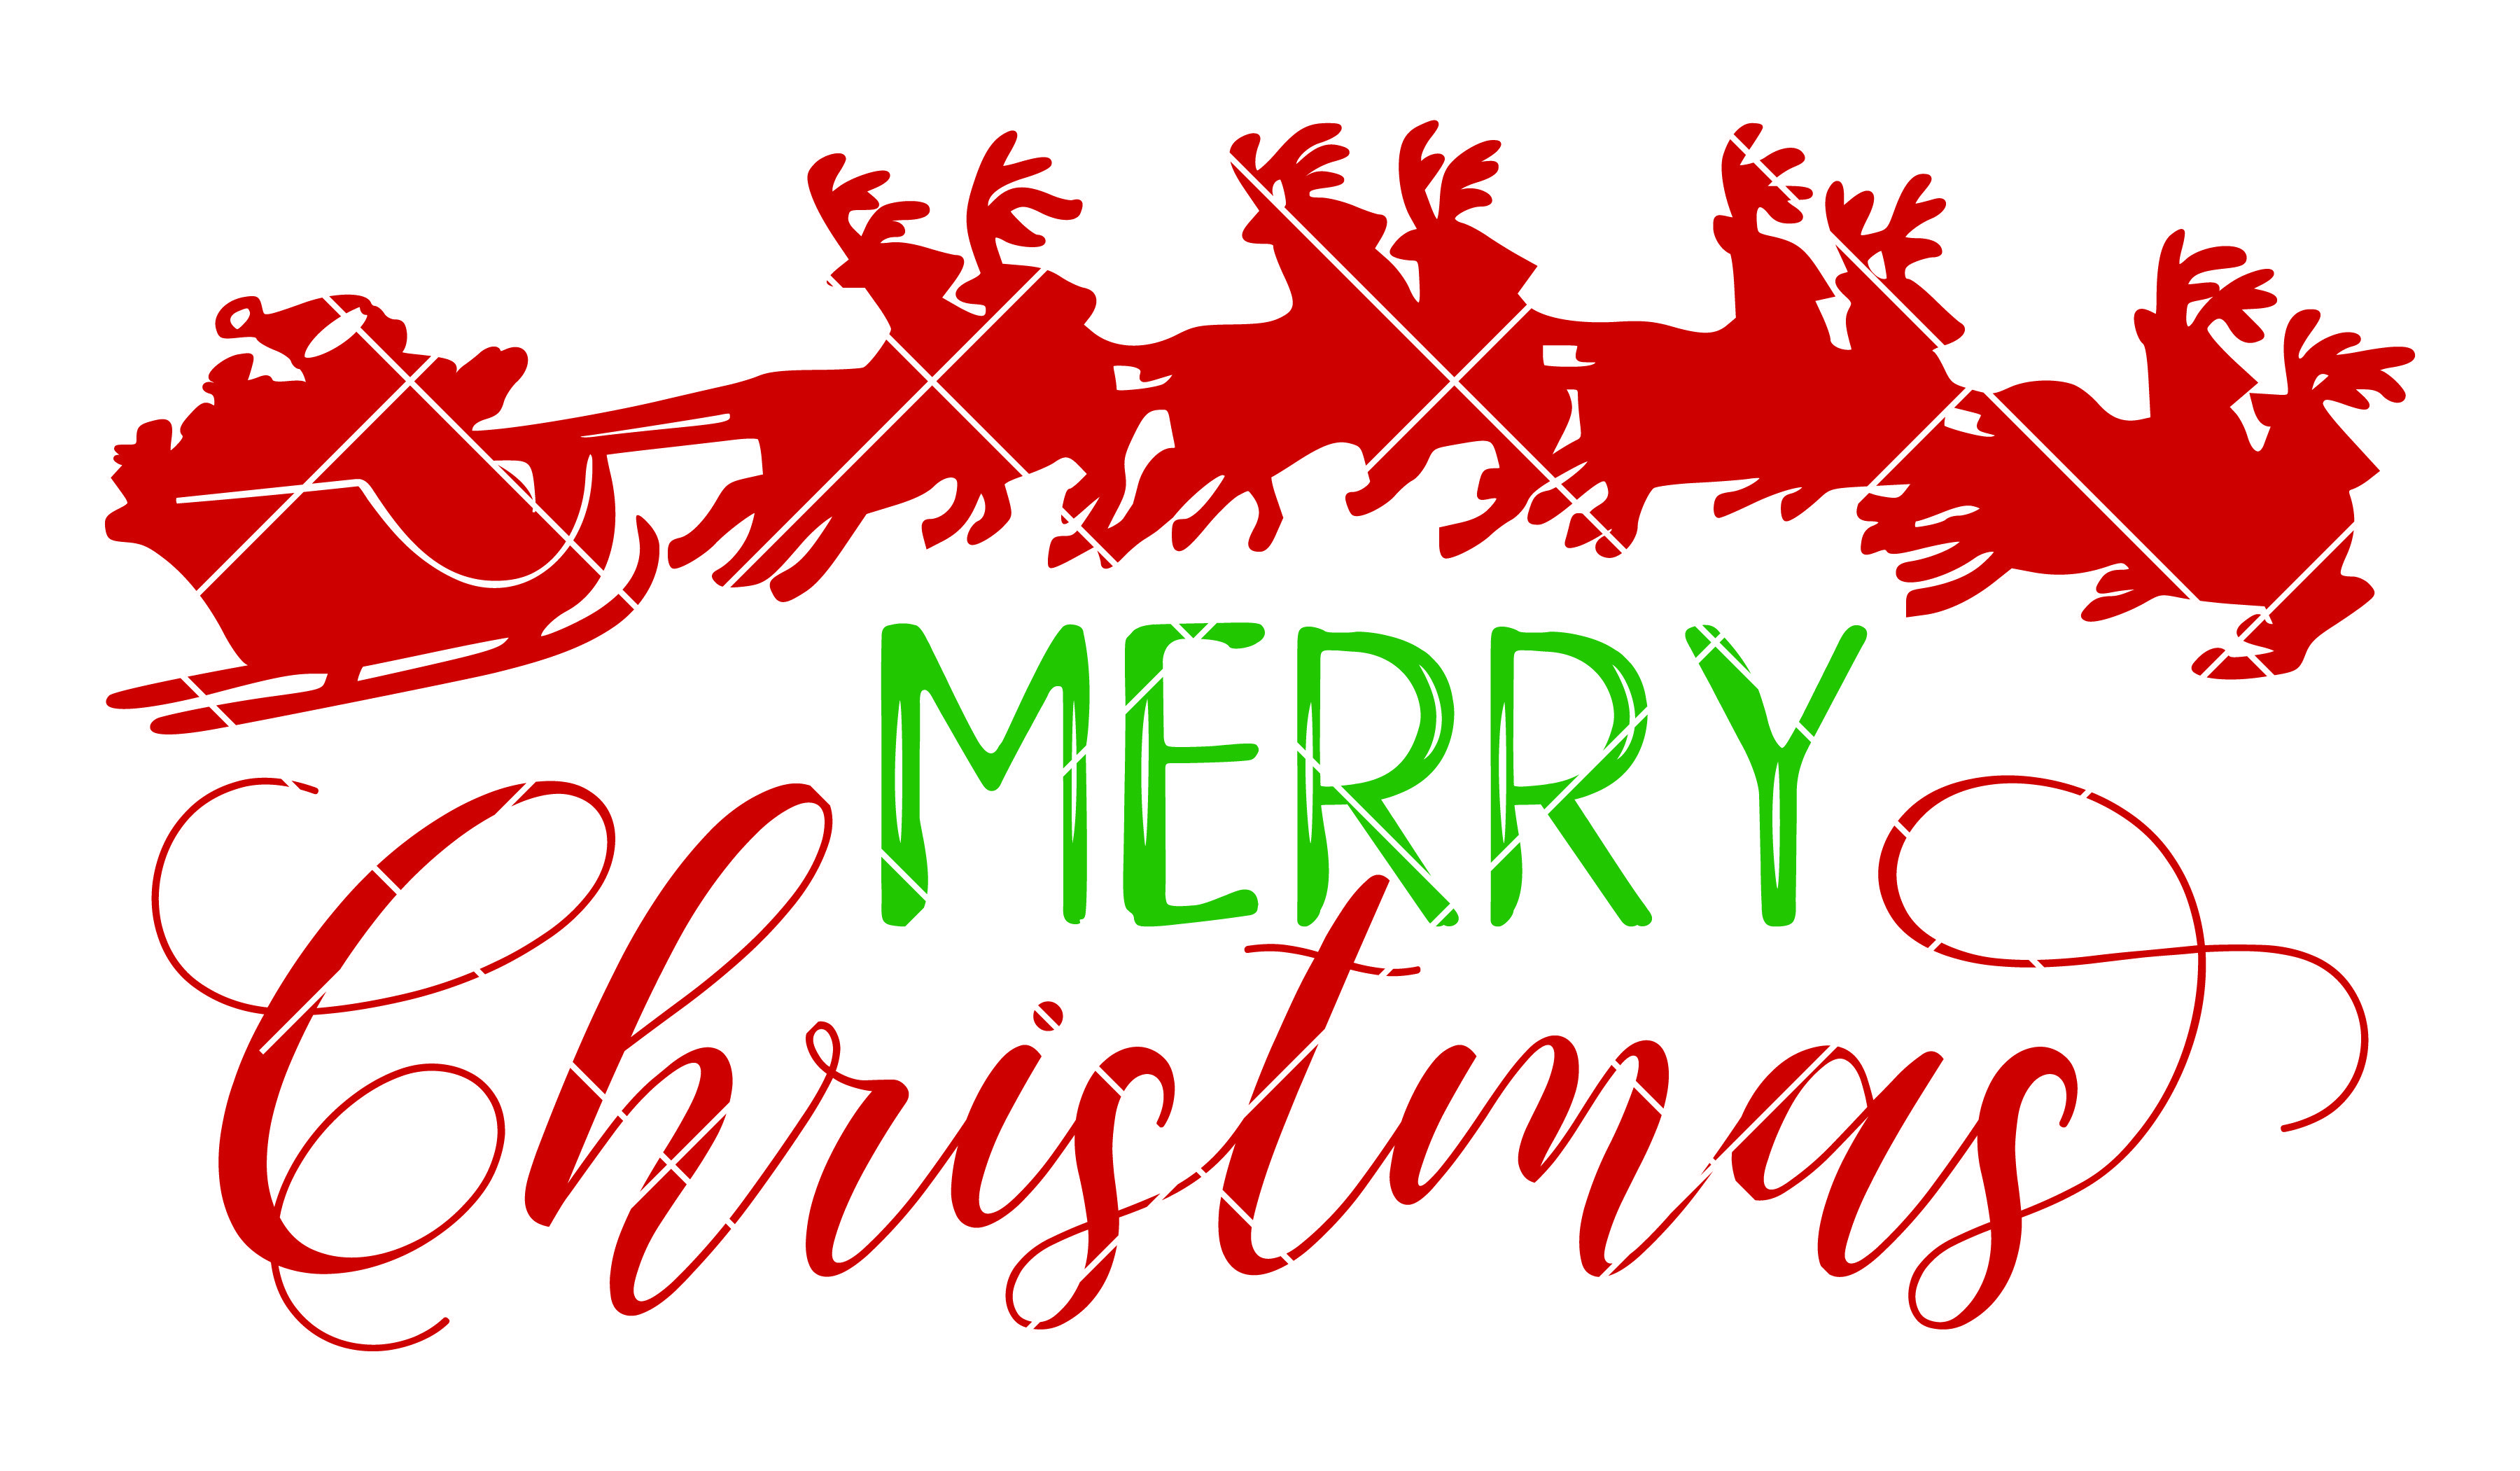 Free Merry Christmas SVG Christmas svg files, Christmas